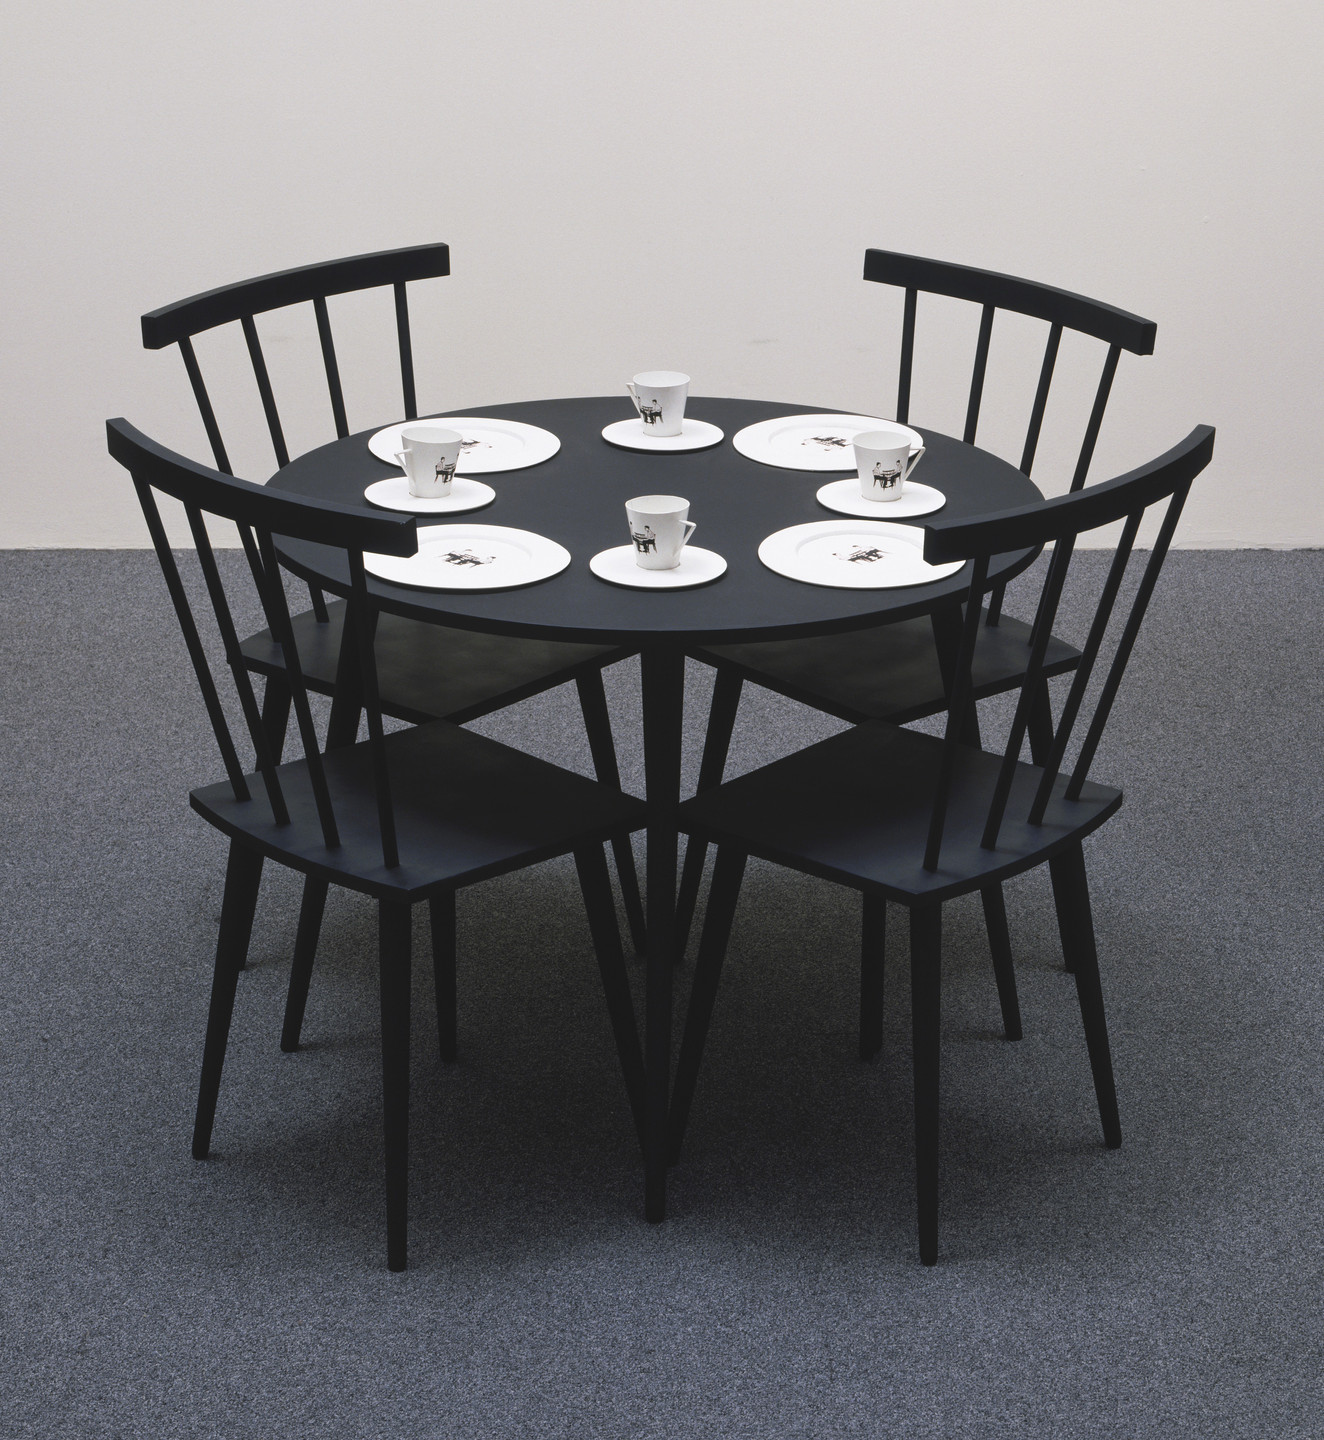 Katharina Fritsch. Black Table with Table Ware. 1985